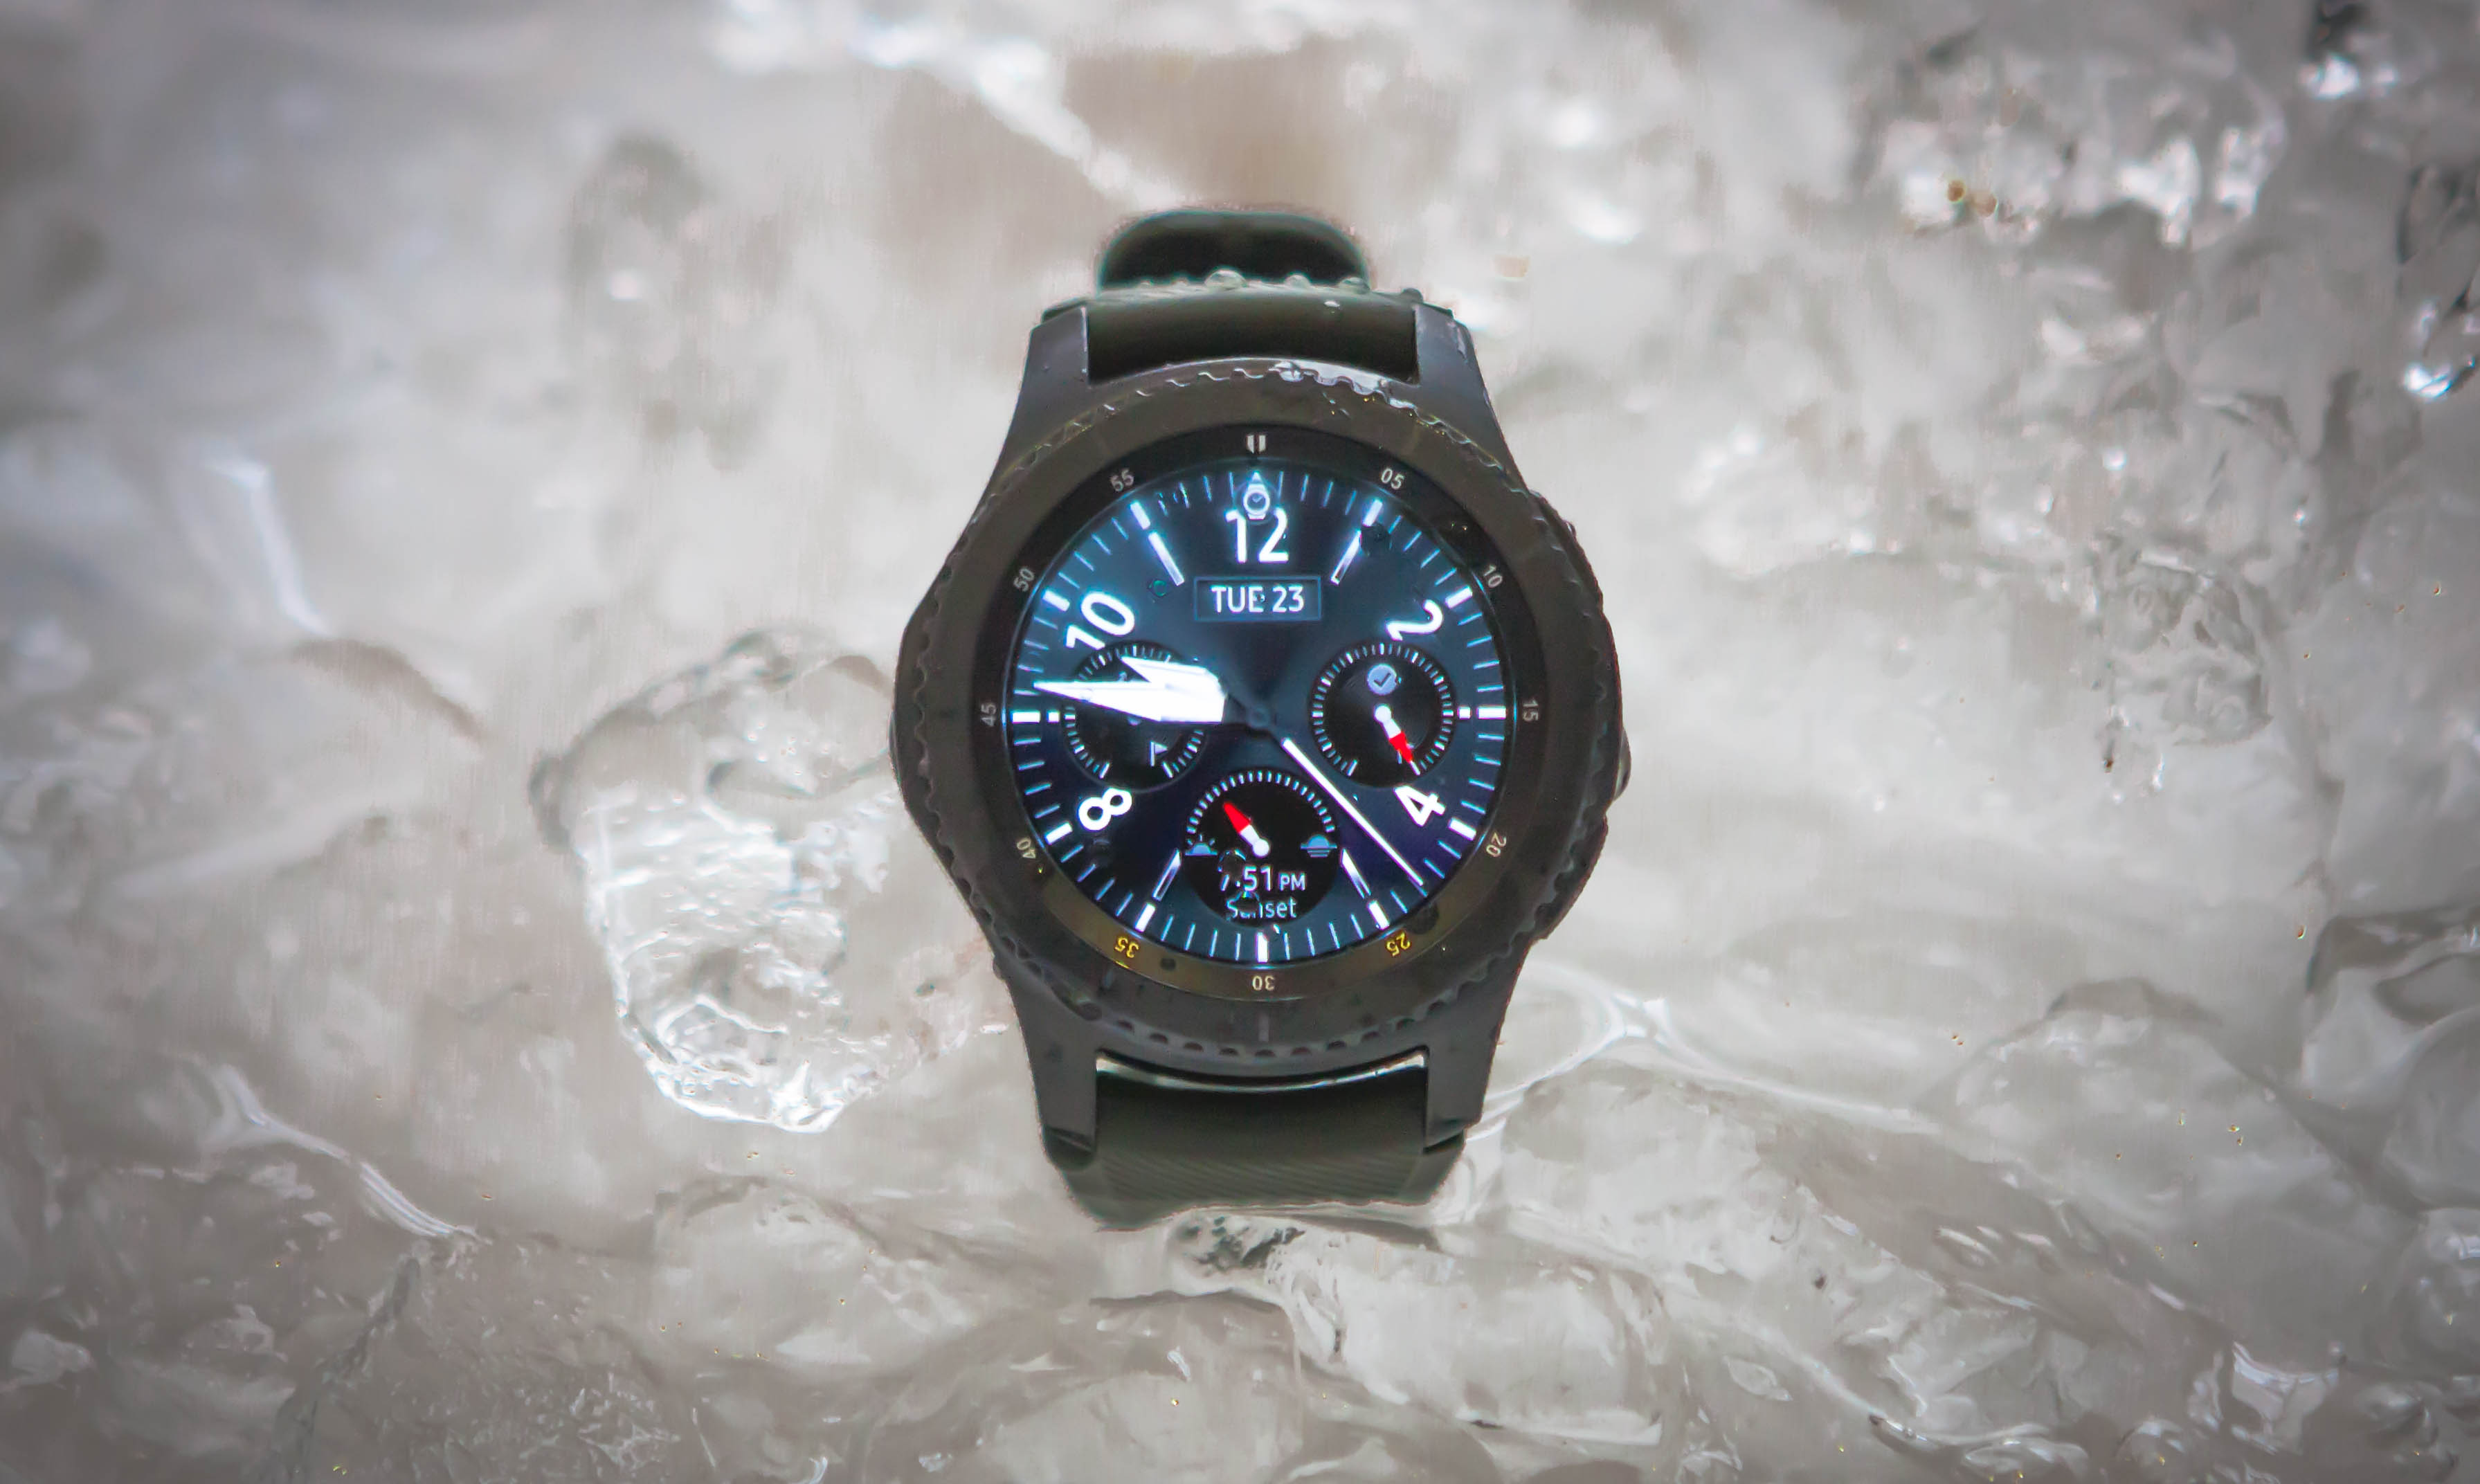 Samsung Gear S3 smartwatch immersed in dry ice